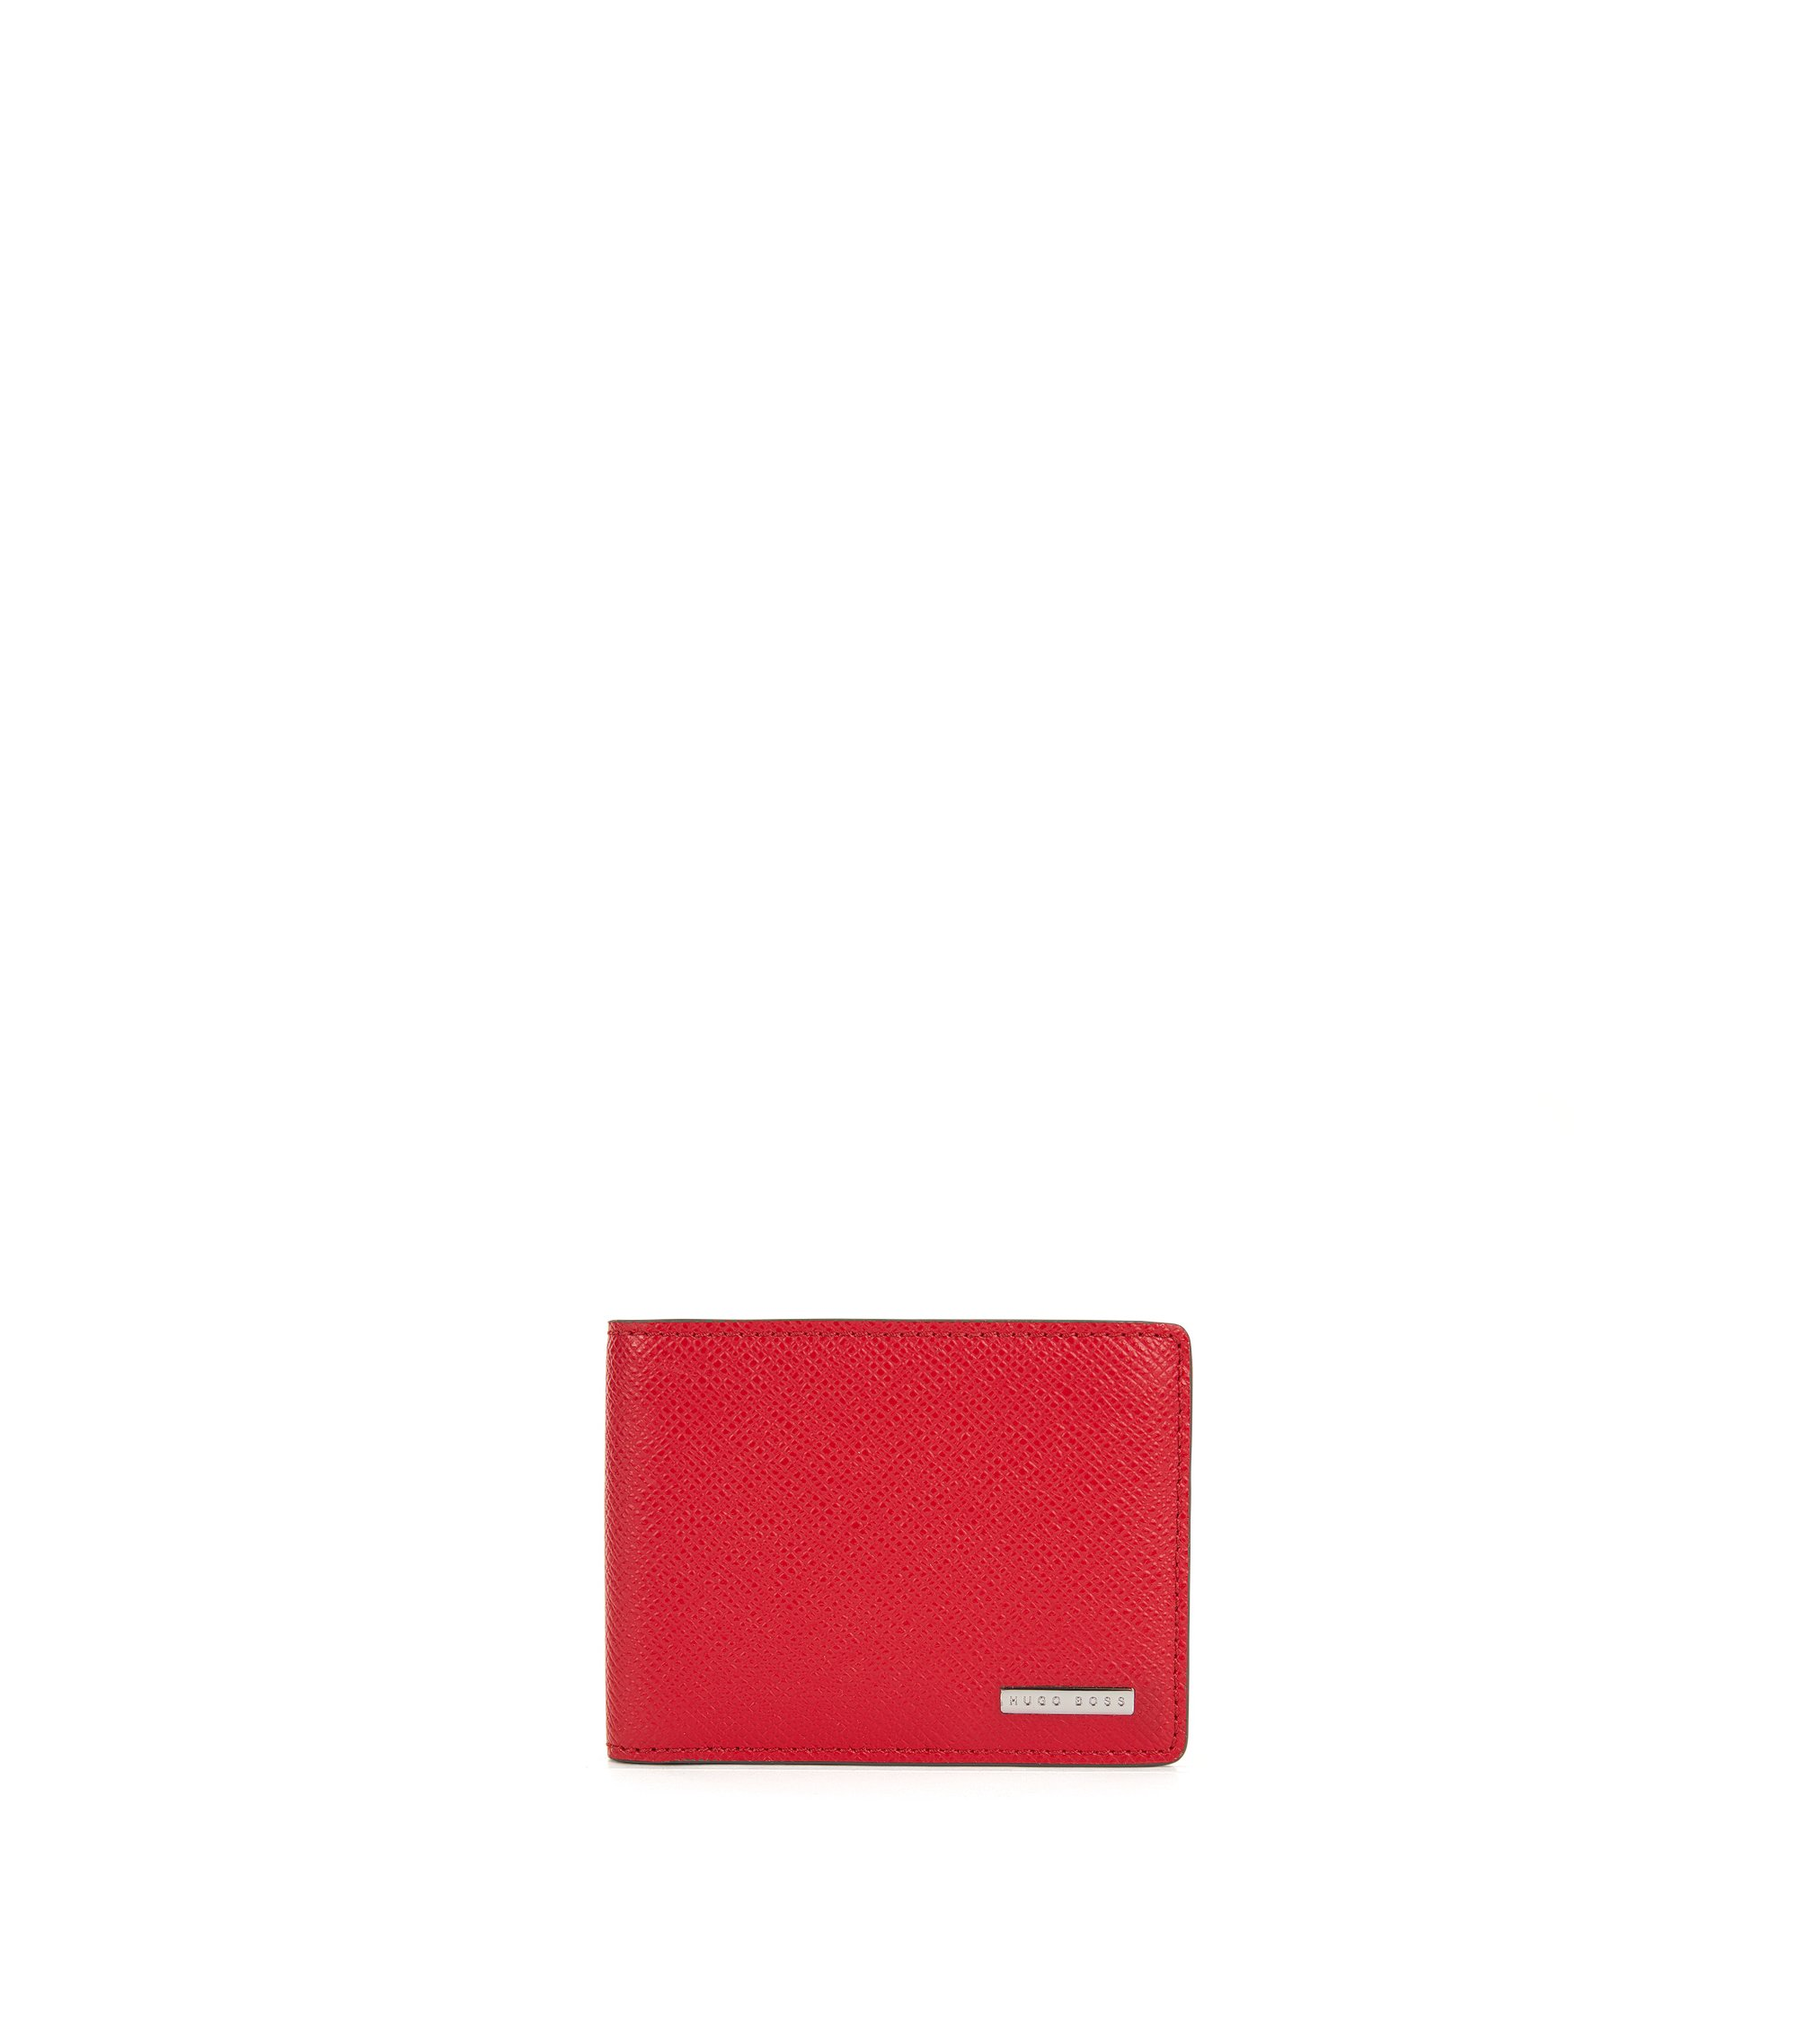 Signature Collection wallet in palmellato leather, Red